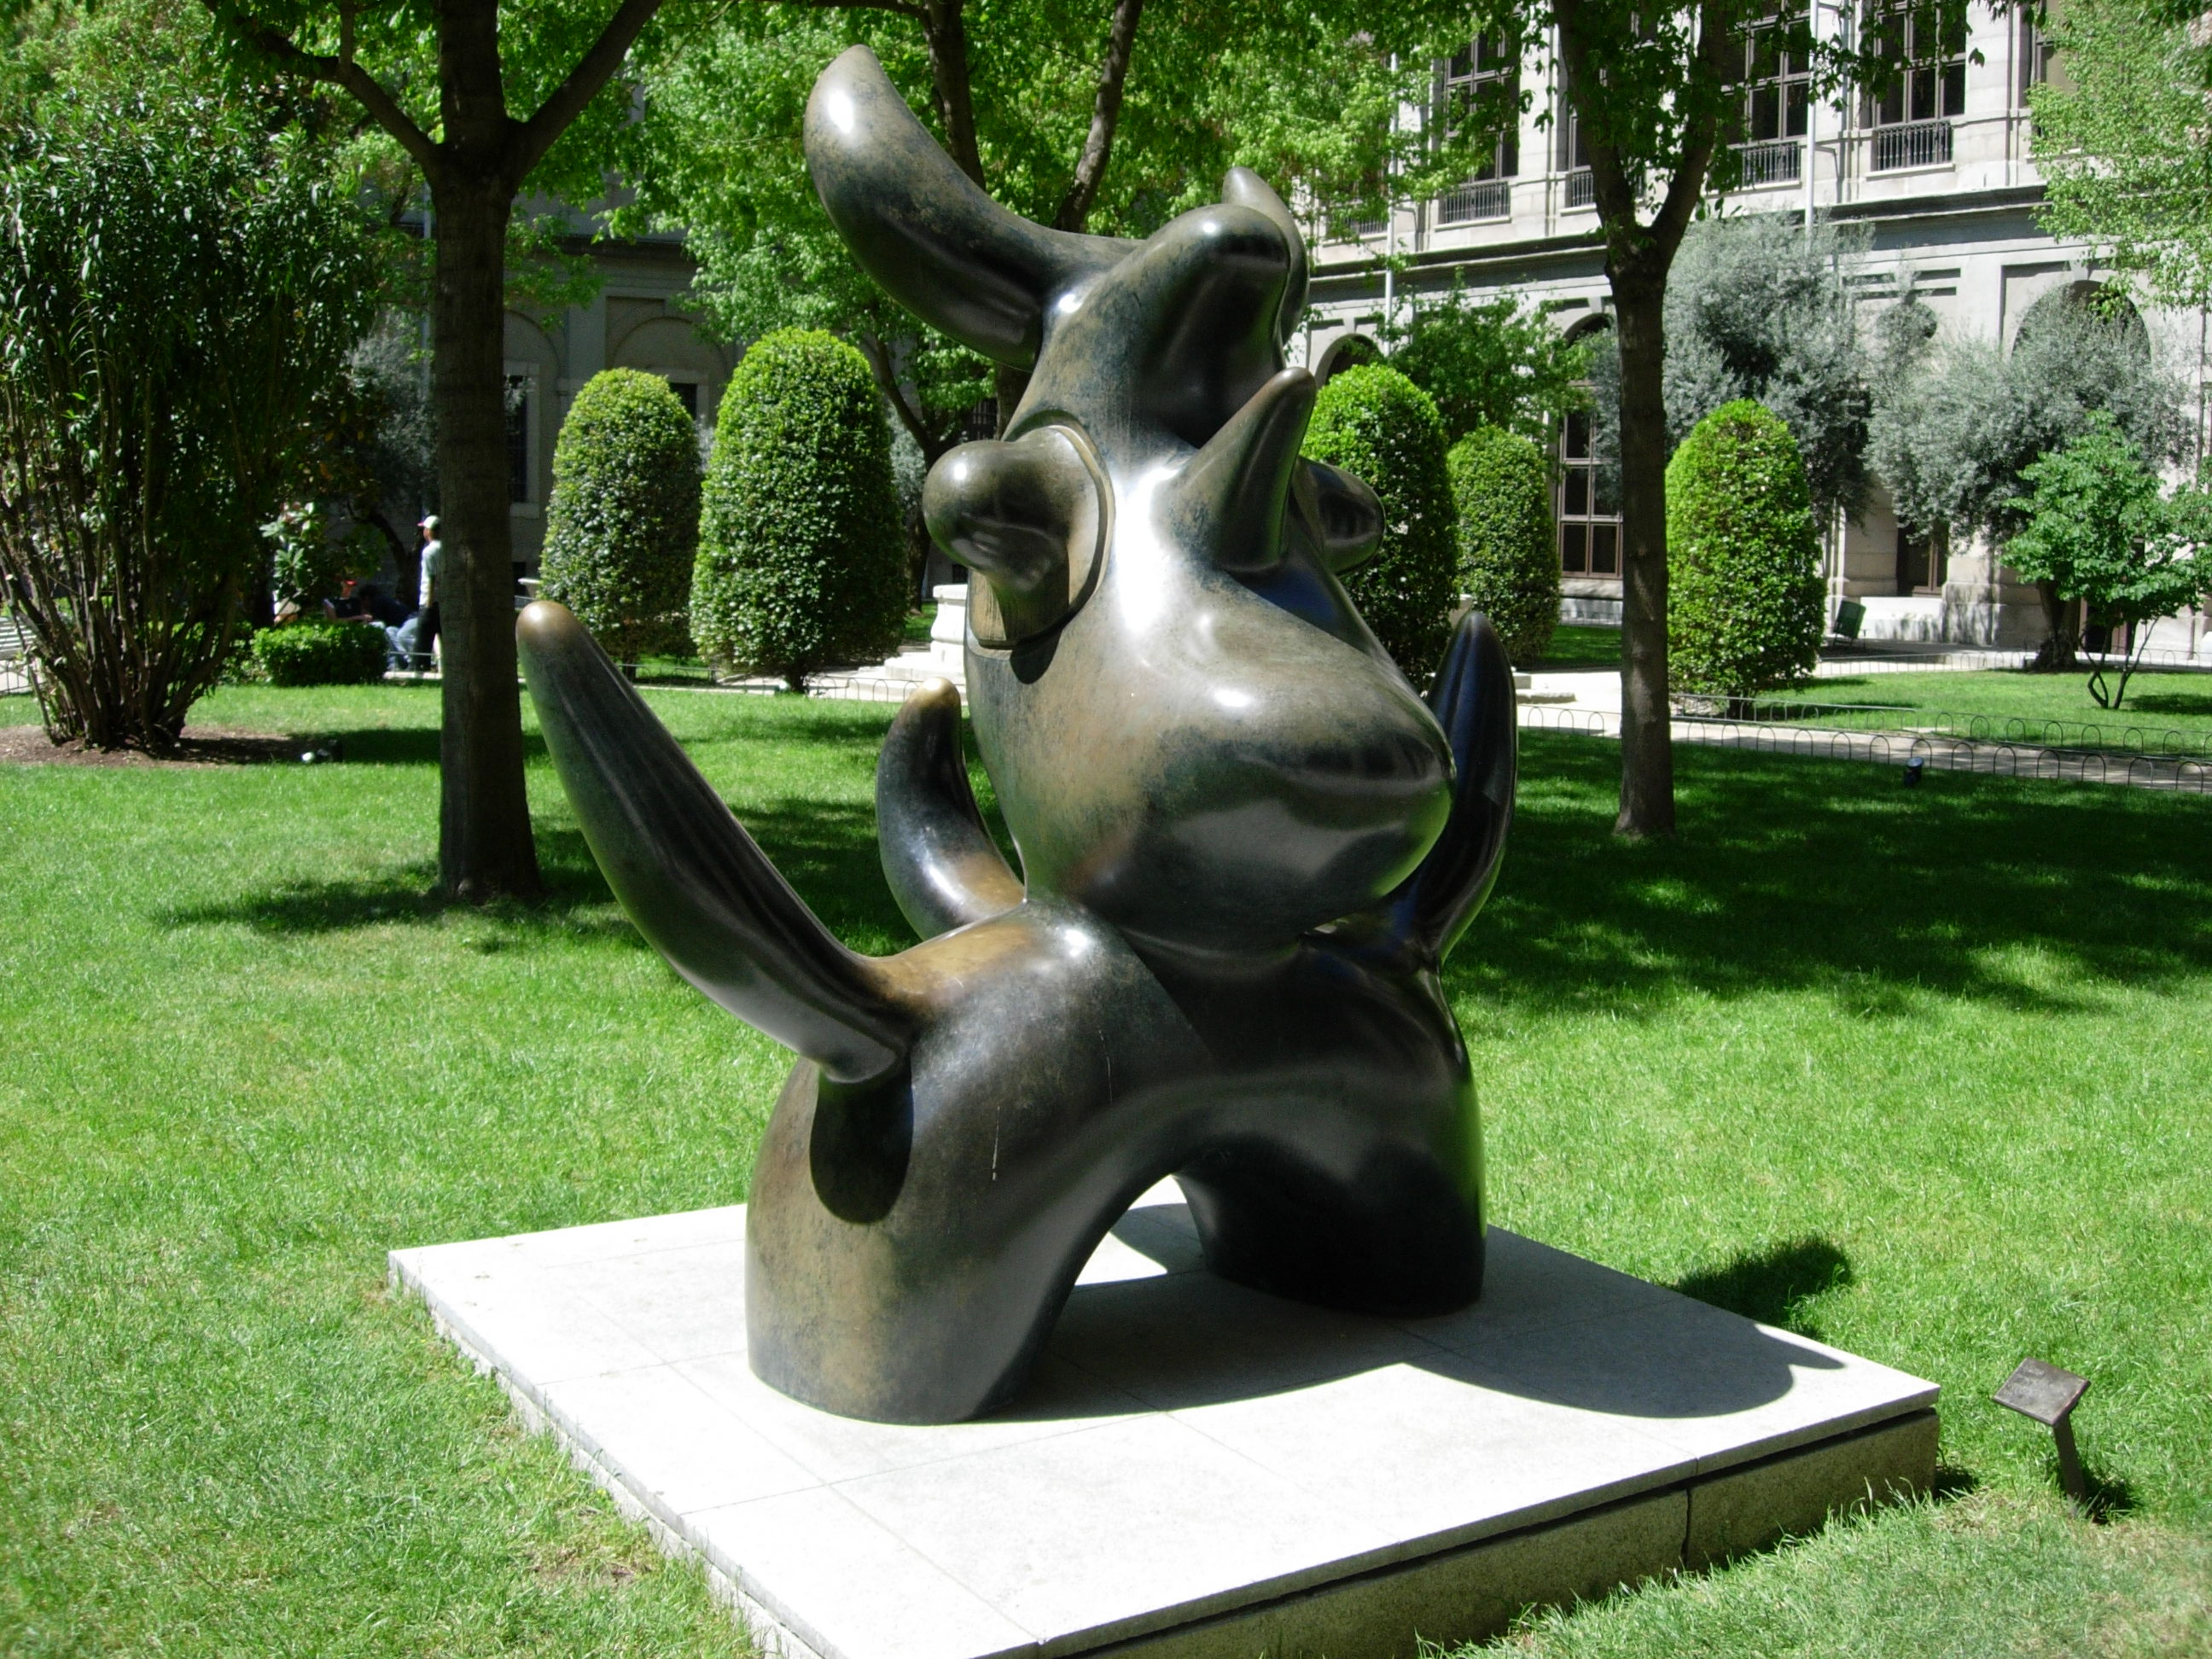 File:Miro\'s sculpture, MADRID.jpg - Wikimedia Commons